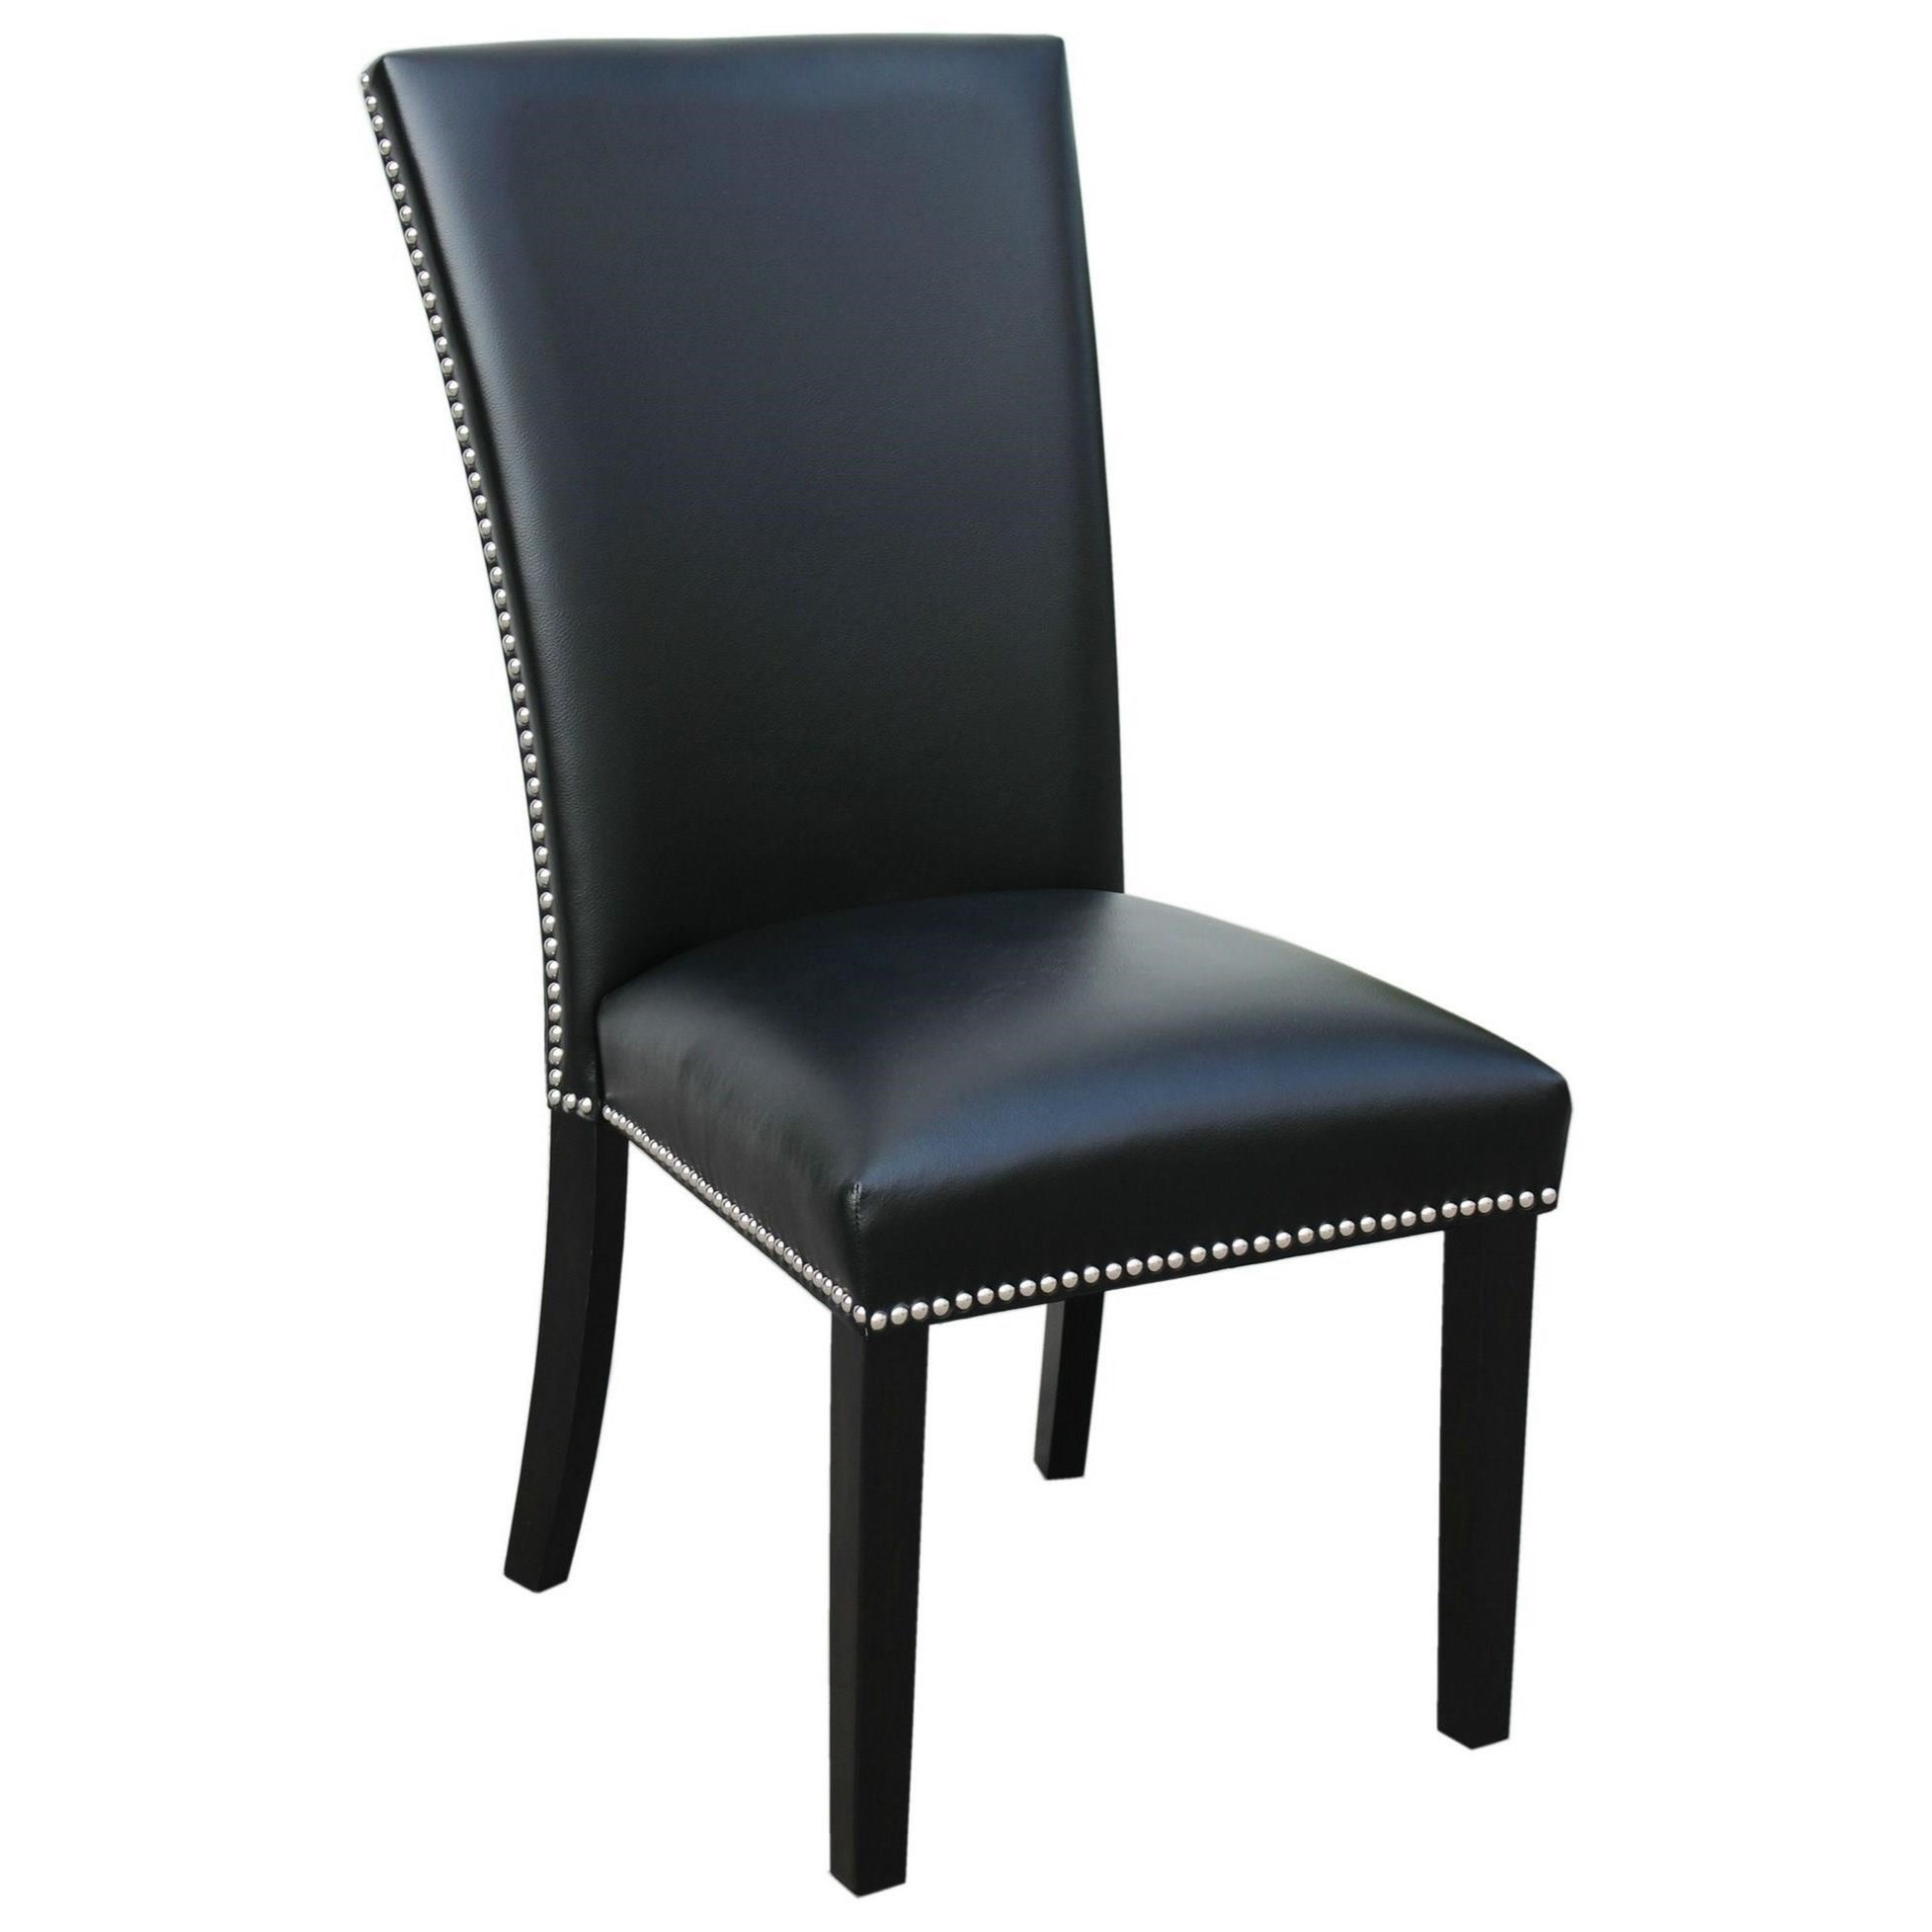 dining room chairs for less | Steve Silver Camila Upholstered Parsons Dining Chair with ...